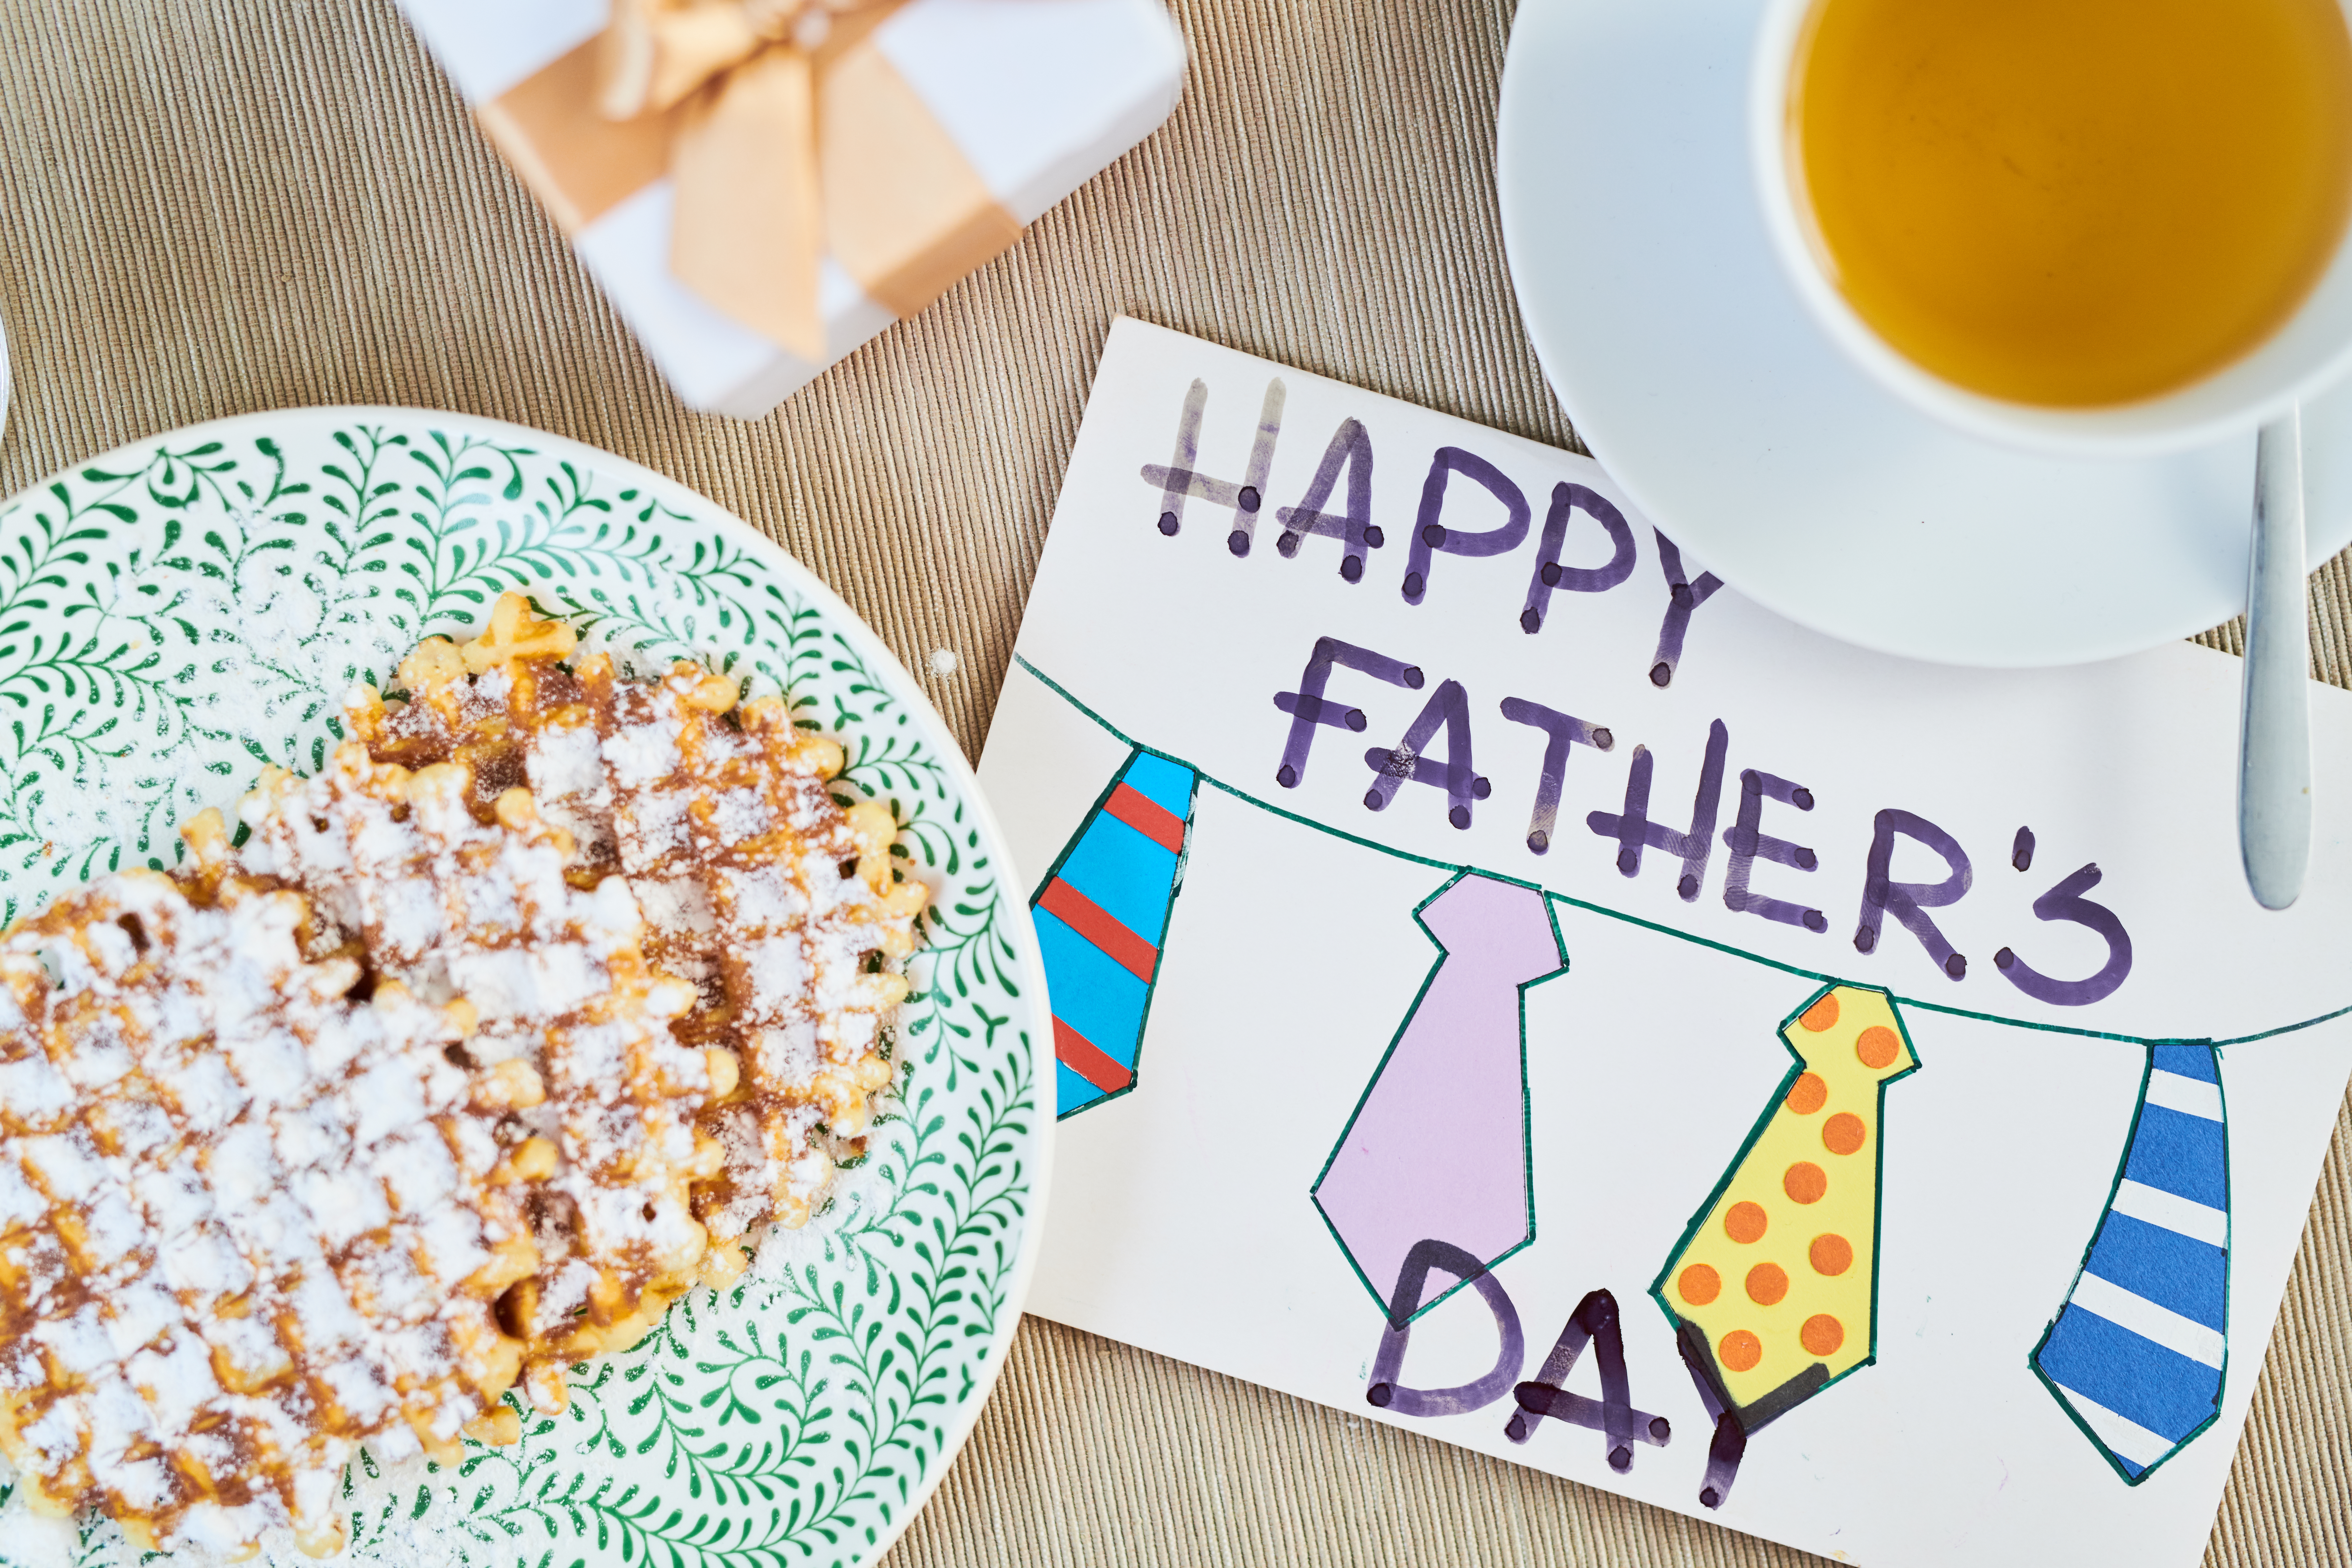 Edible fathers day gifts